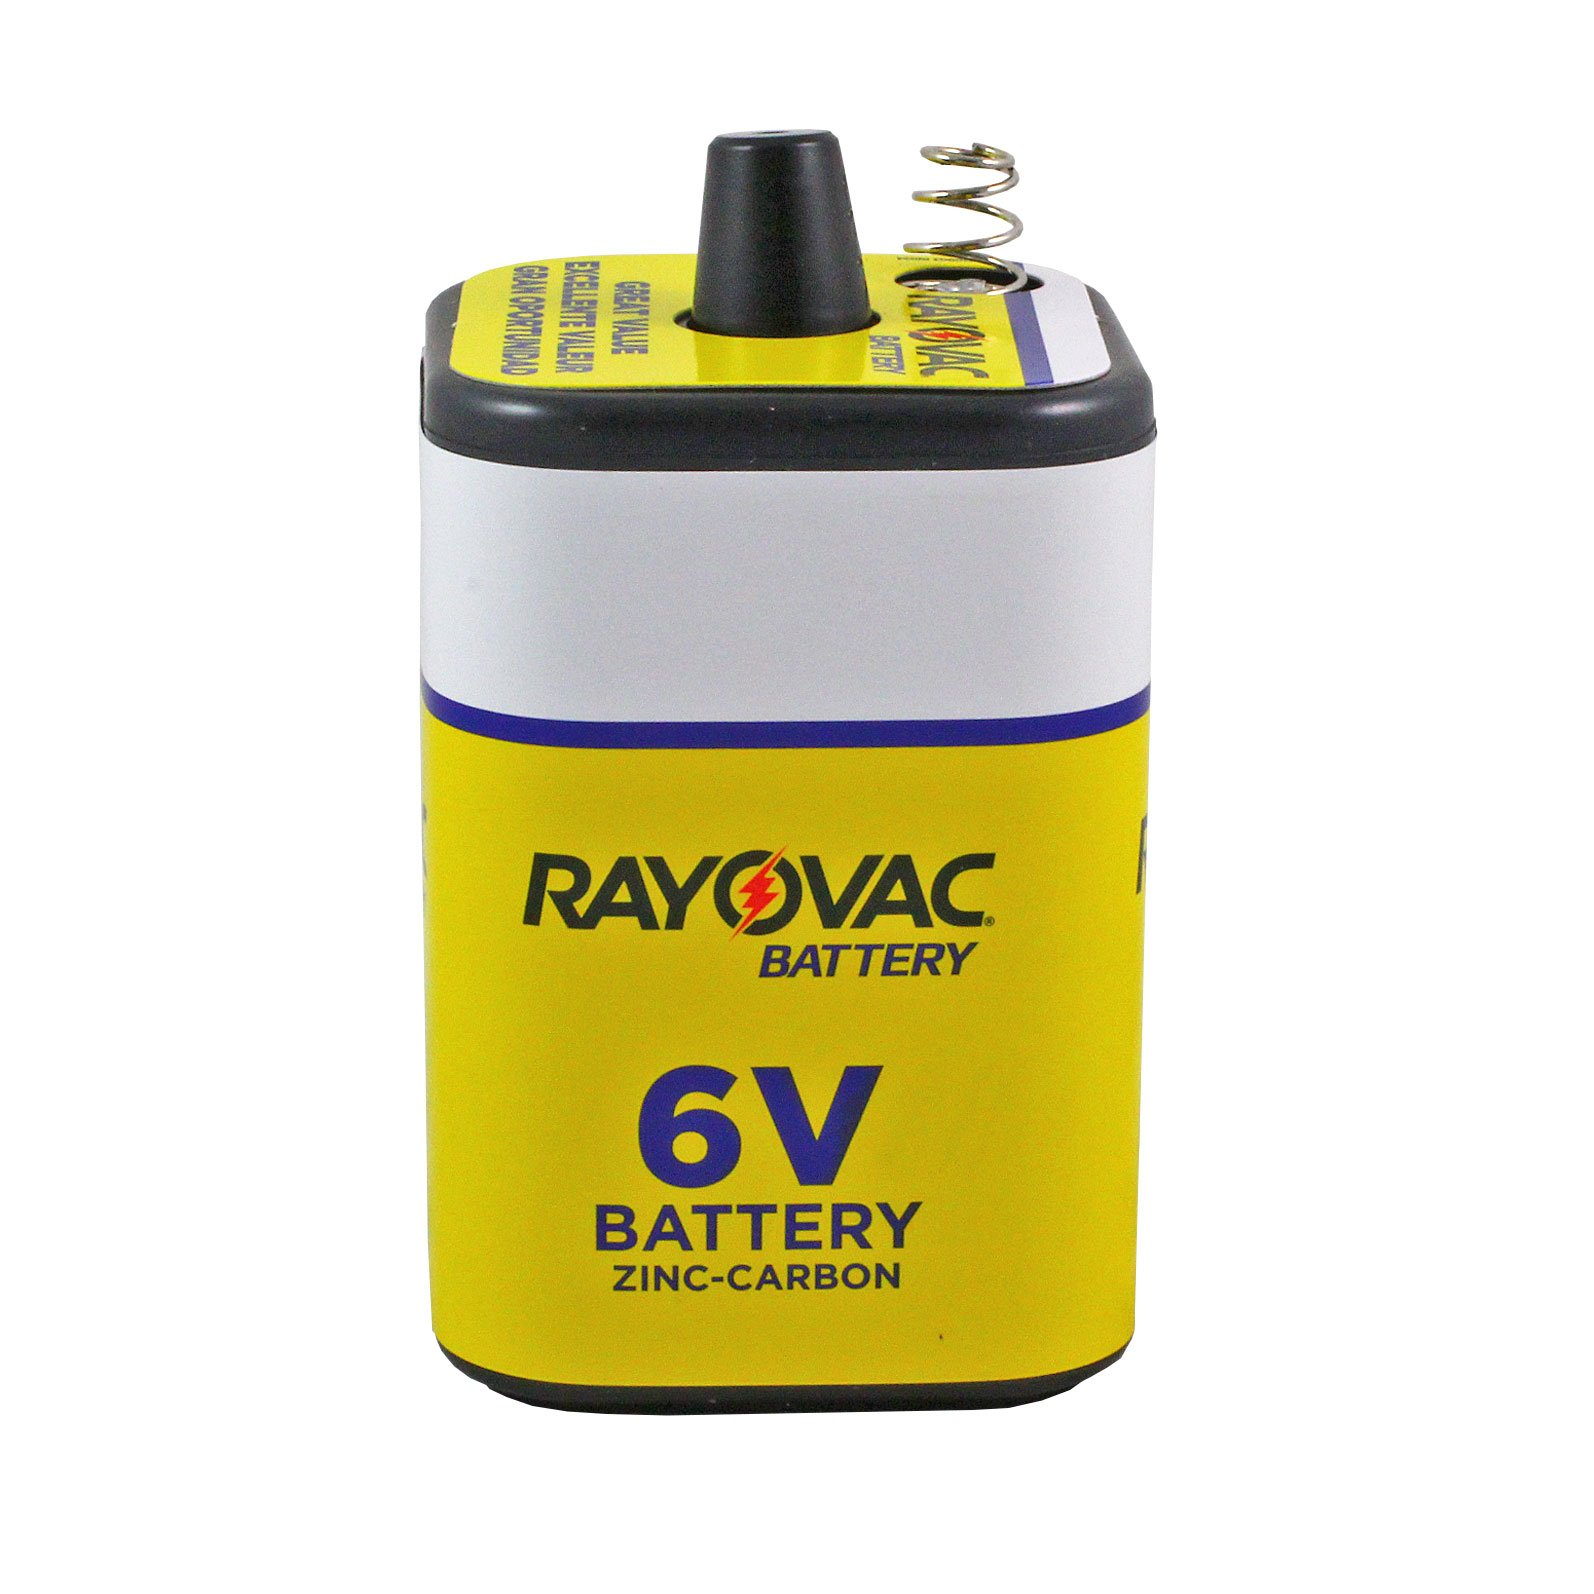 rayovac 6v hd 6 volt heavy duty lantern battery. Black Bedroom Furniture Sets. Home Design Ideas